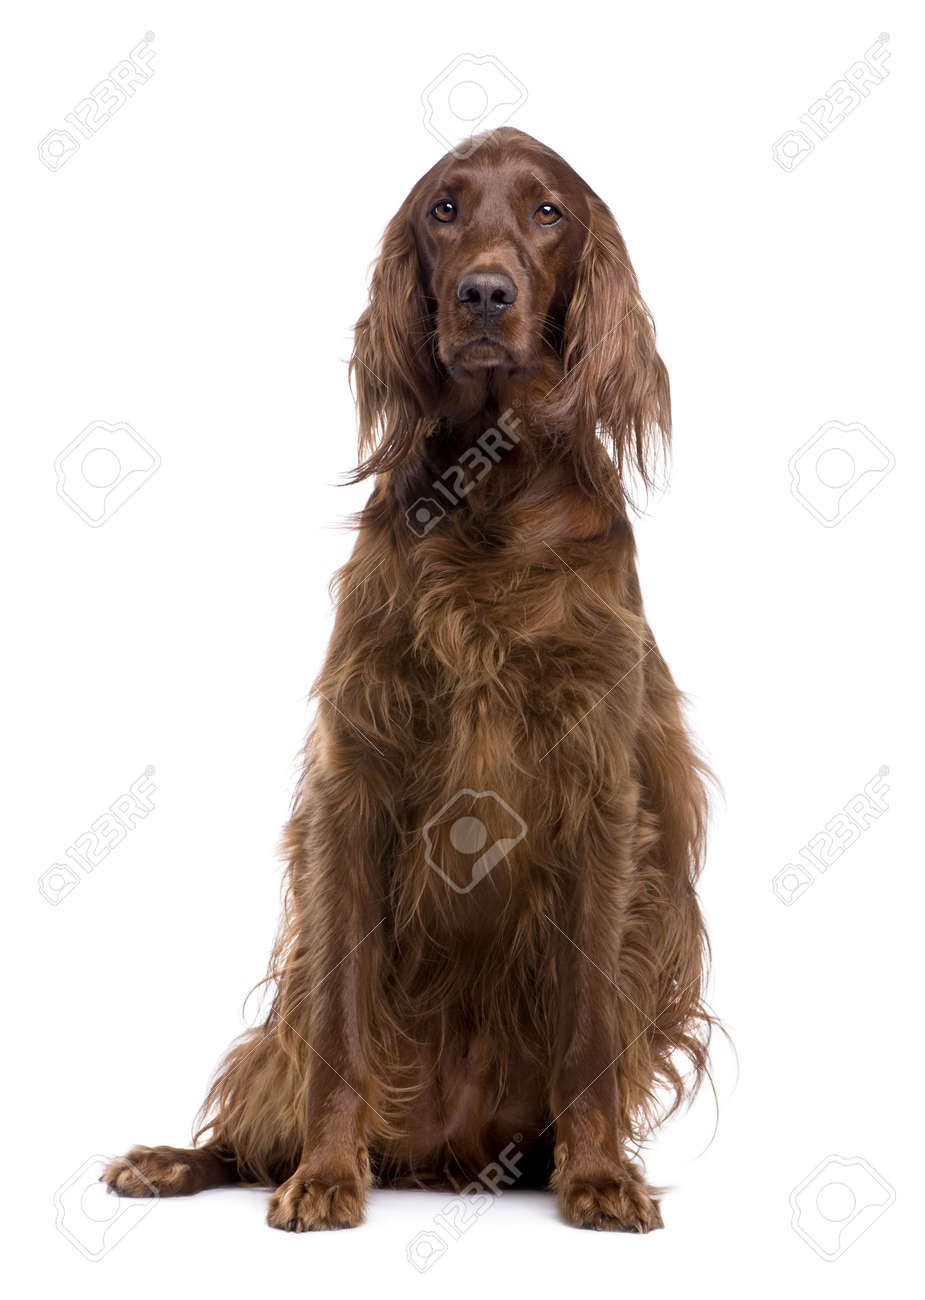 Irish Setter (3 years) in front of a white background Stock Photo - 3943156